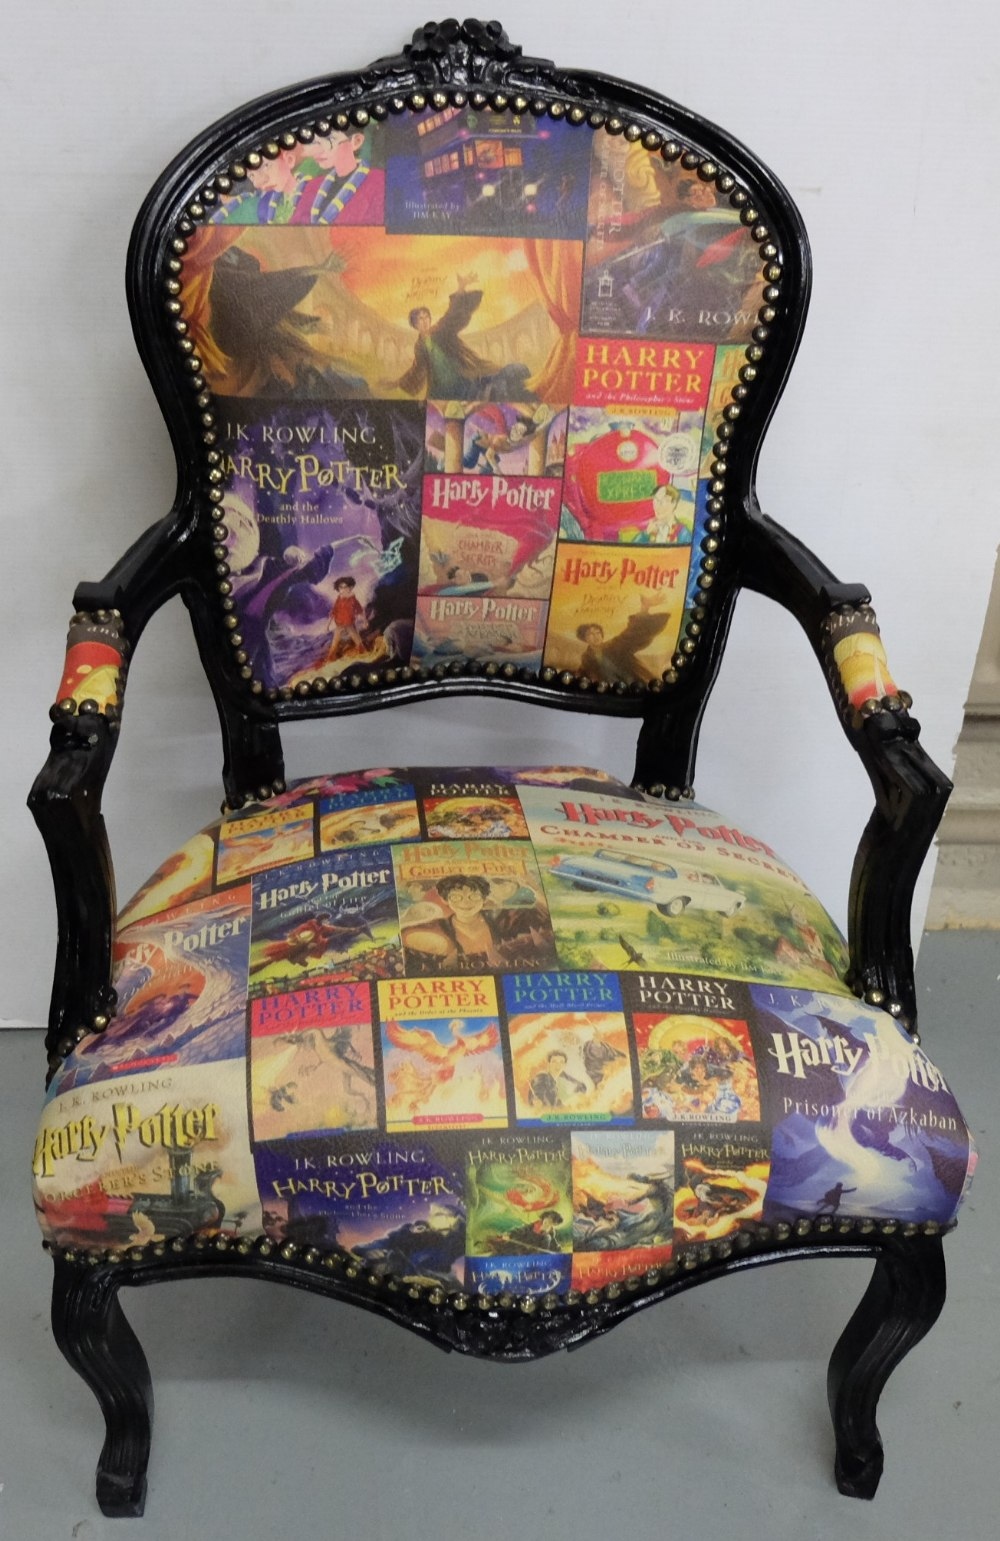 Lot 15 - Themed Armchair with Harry Pottery Book Covers